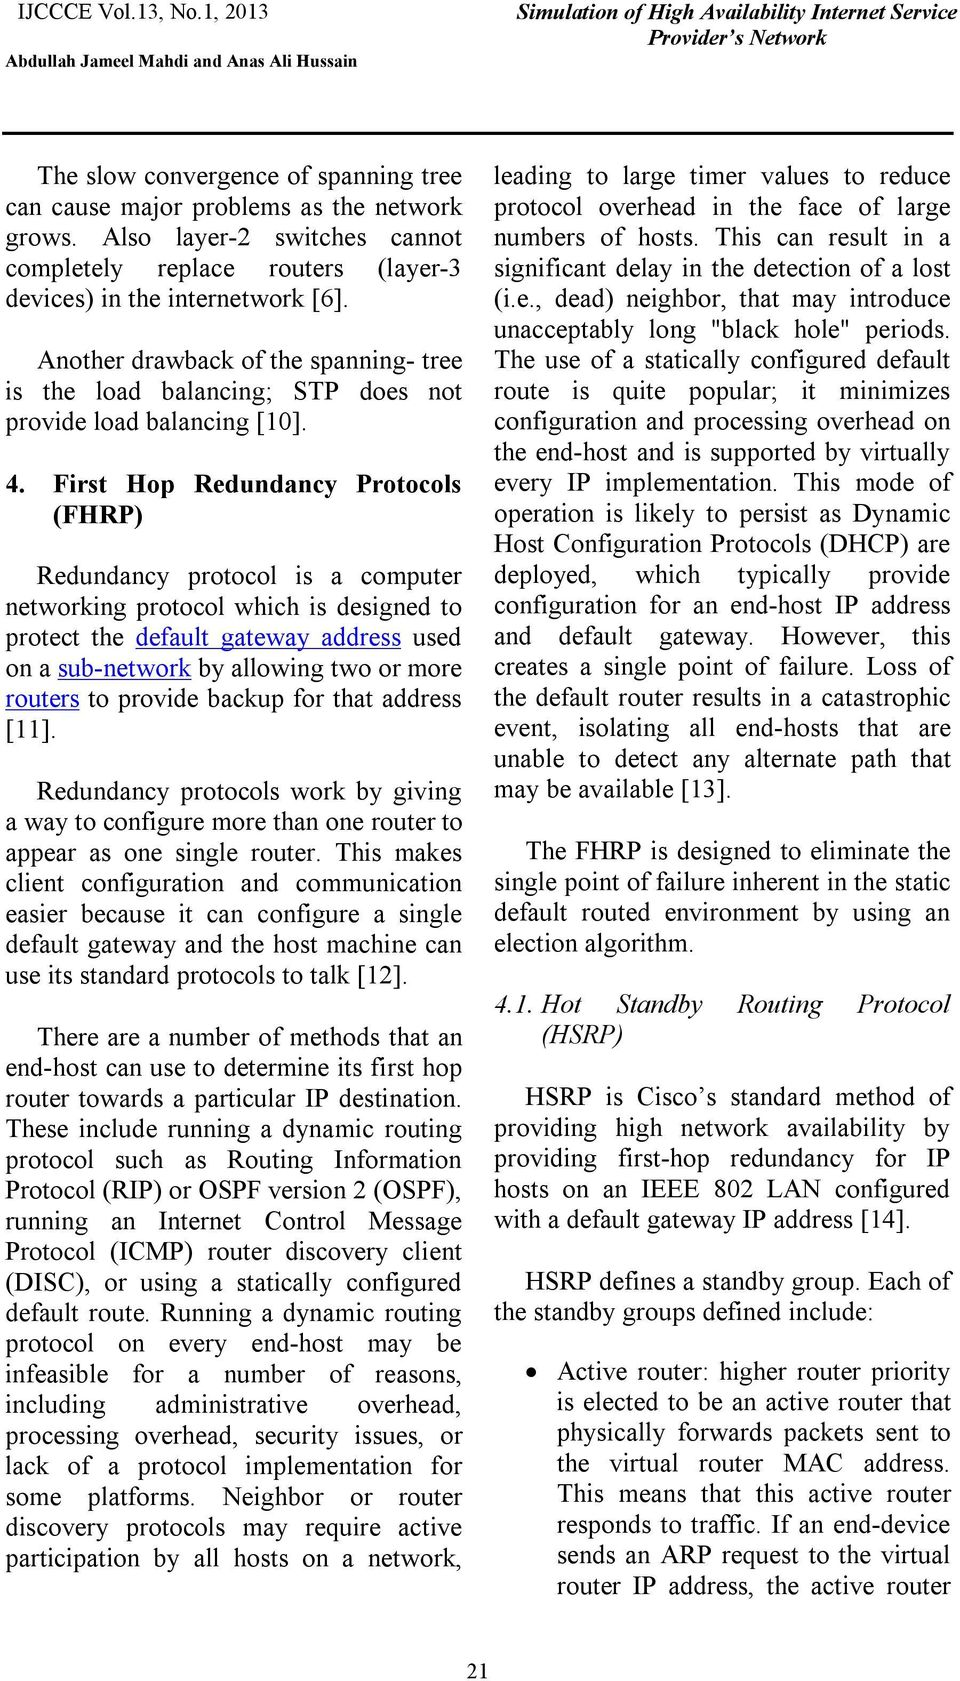 First Hop Redundancy Protocols (FHRP) Redundancy protocol is a computer networking protocol which is designed to protect the default gateway address used on a sub-network by allowing two or more